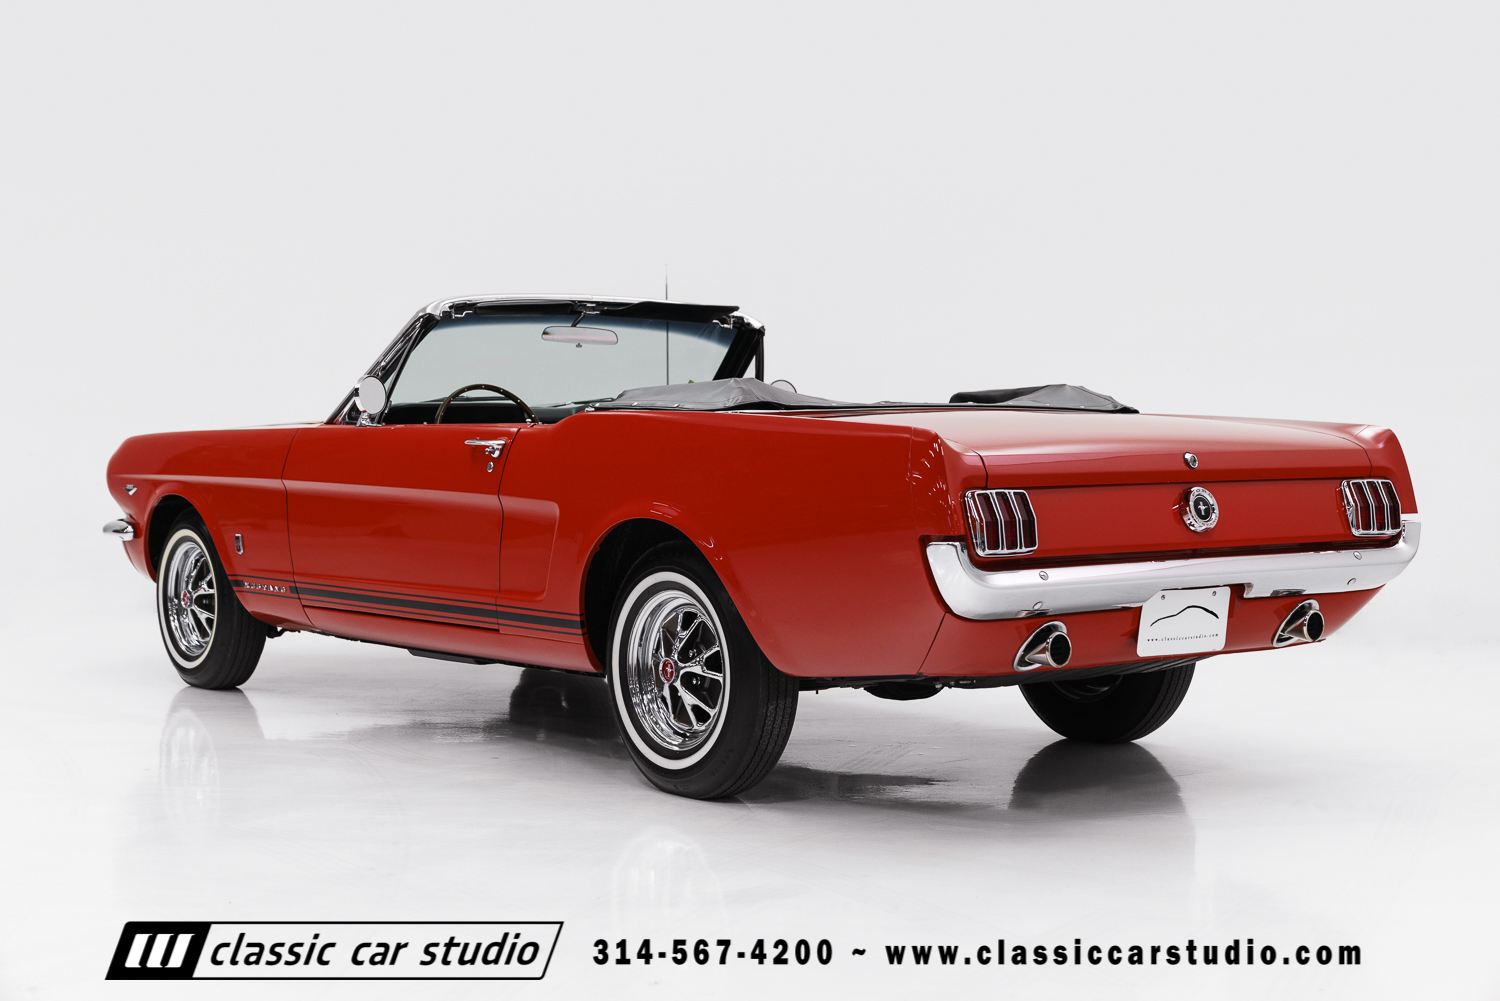 Ford Mustang Gt Convertible 2017 >> 1965 Ford Mustang GT | Classic Car Studio